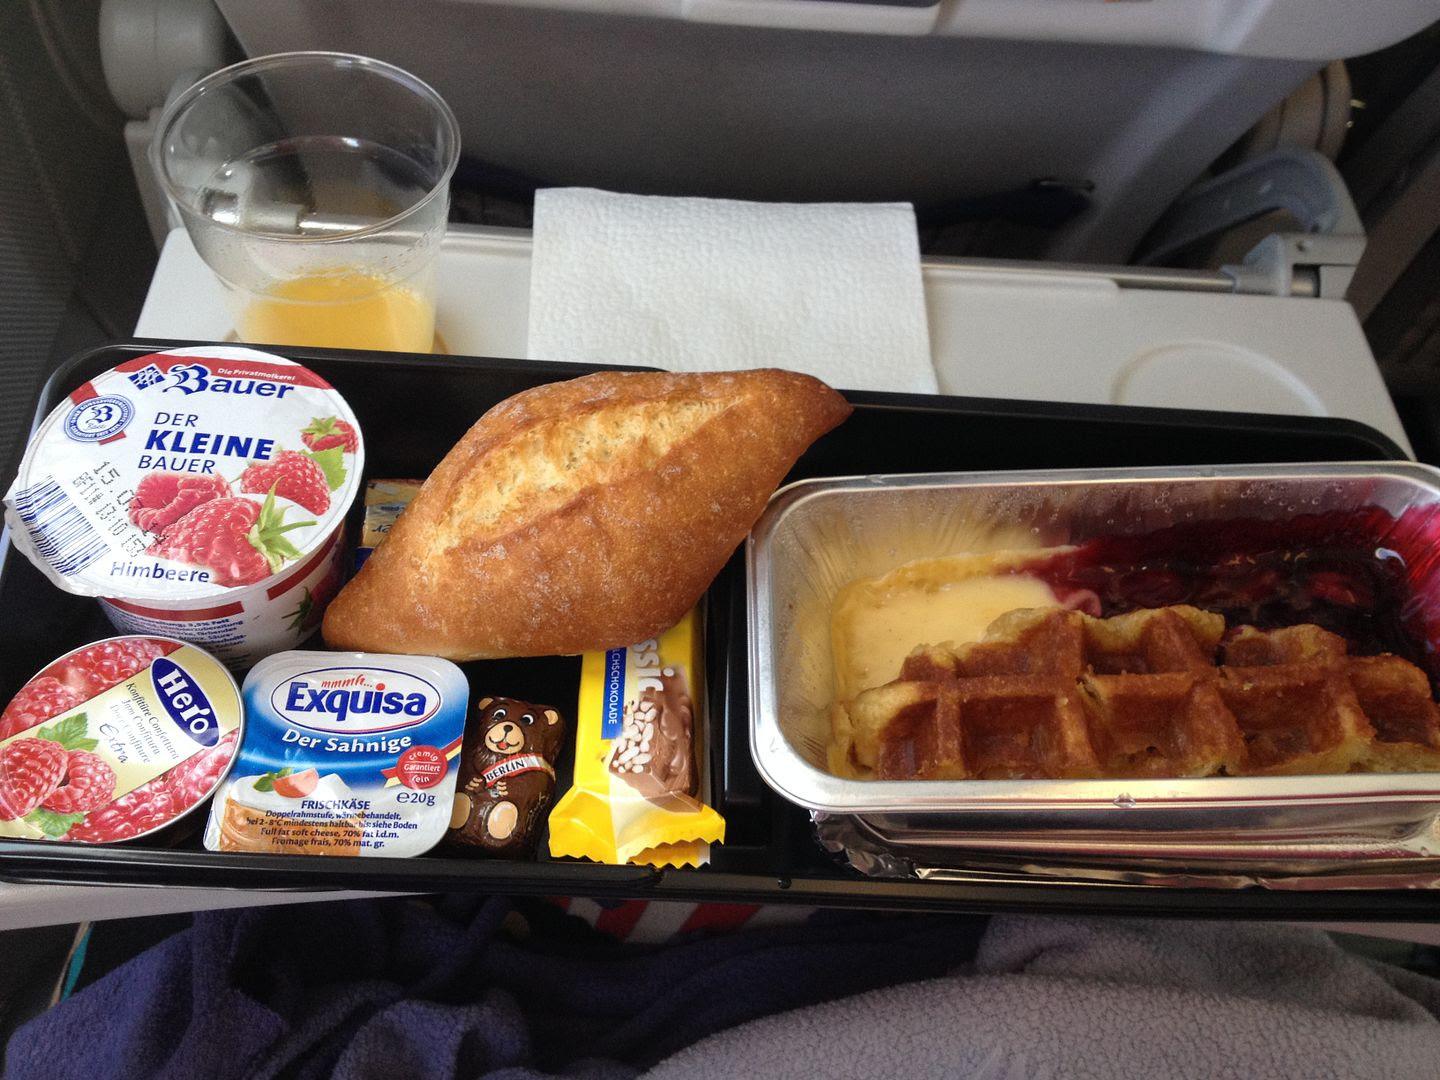 Lufthansa Breakfast with Cherries and Cream Waffles photo 2014-07-05071626_zps3eac0f8c.jpg